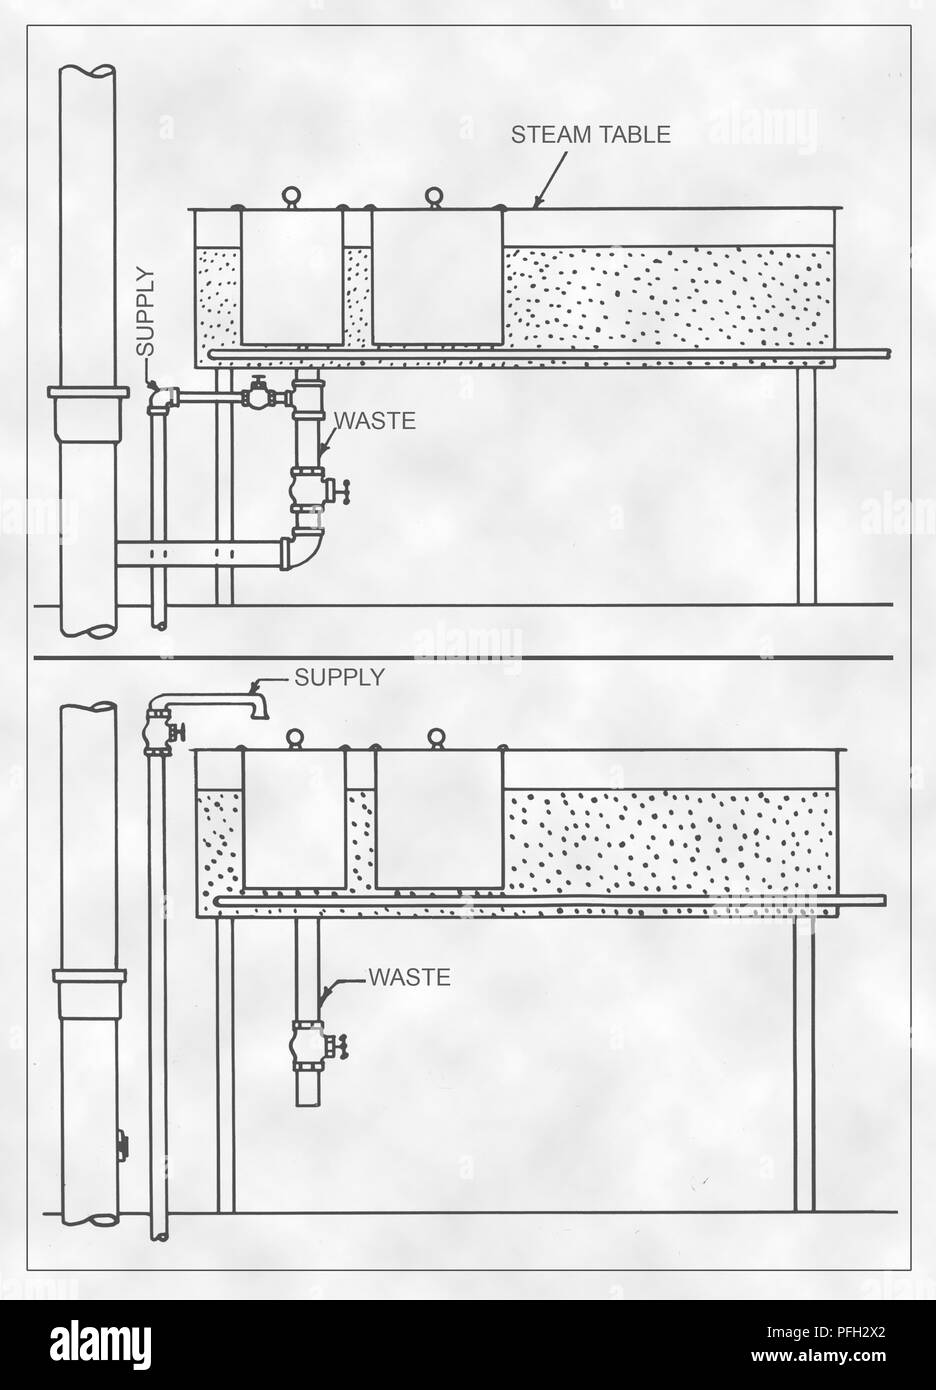 medium resolution of two possible plumbing configurations of a steam table plumbing interconnectivity digitally enhanced and colorized diagram 1936 image courtesy centers for